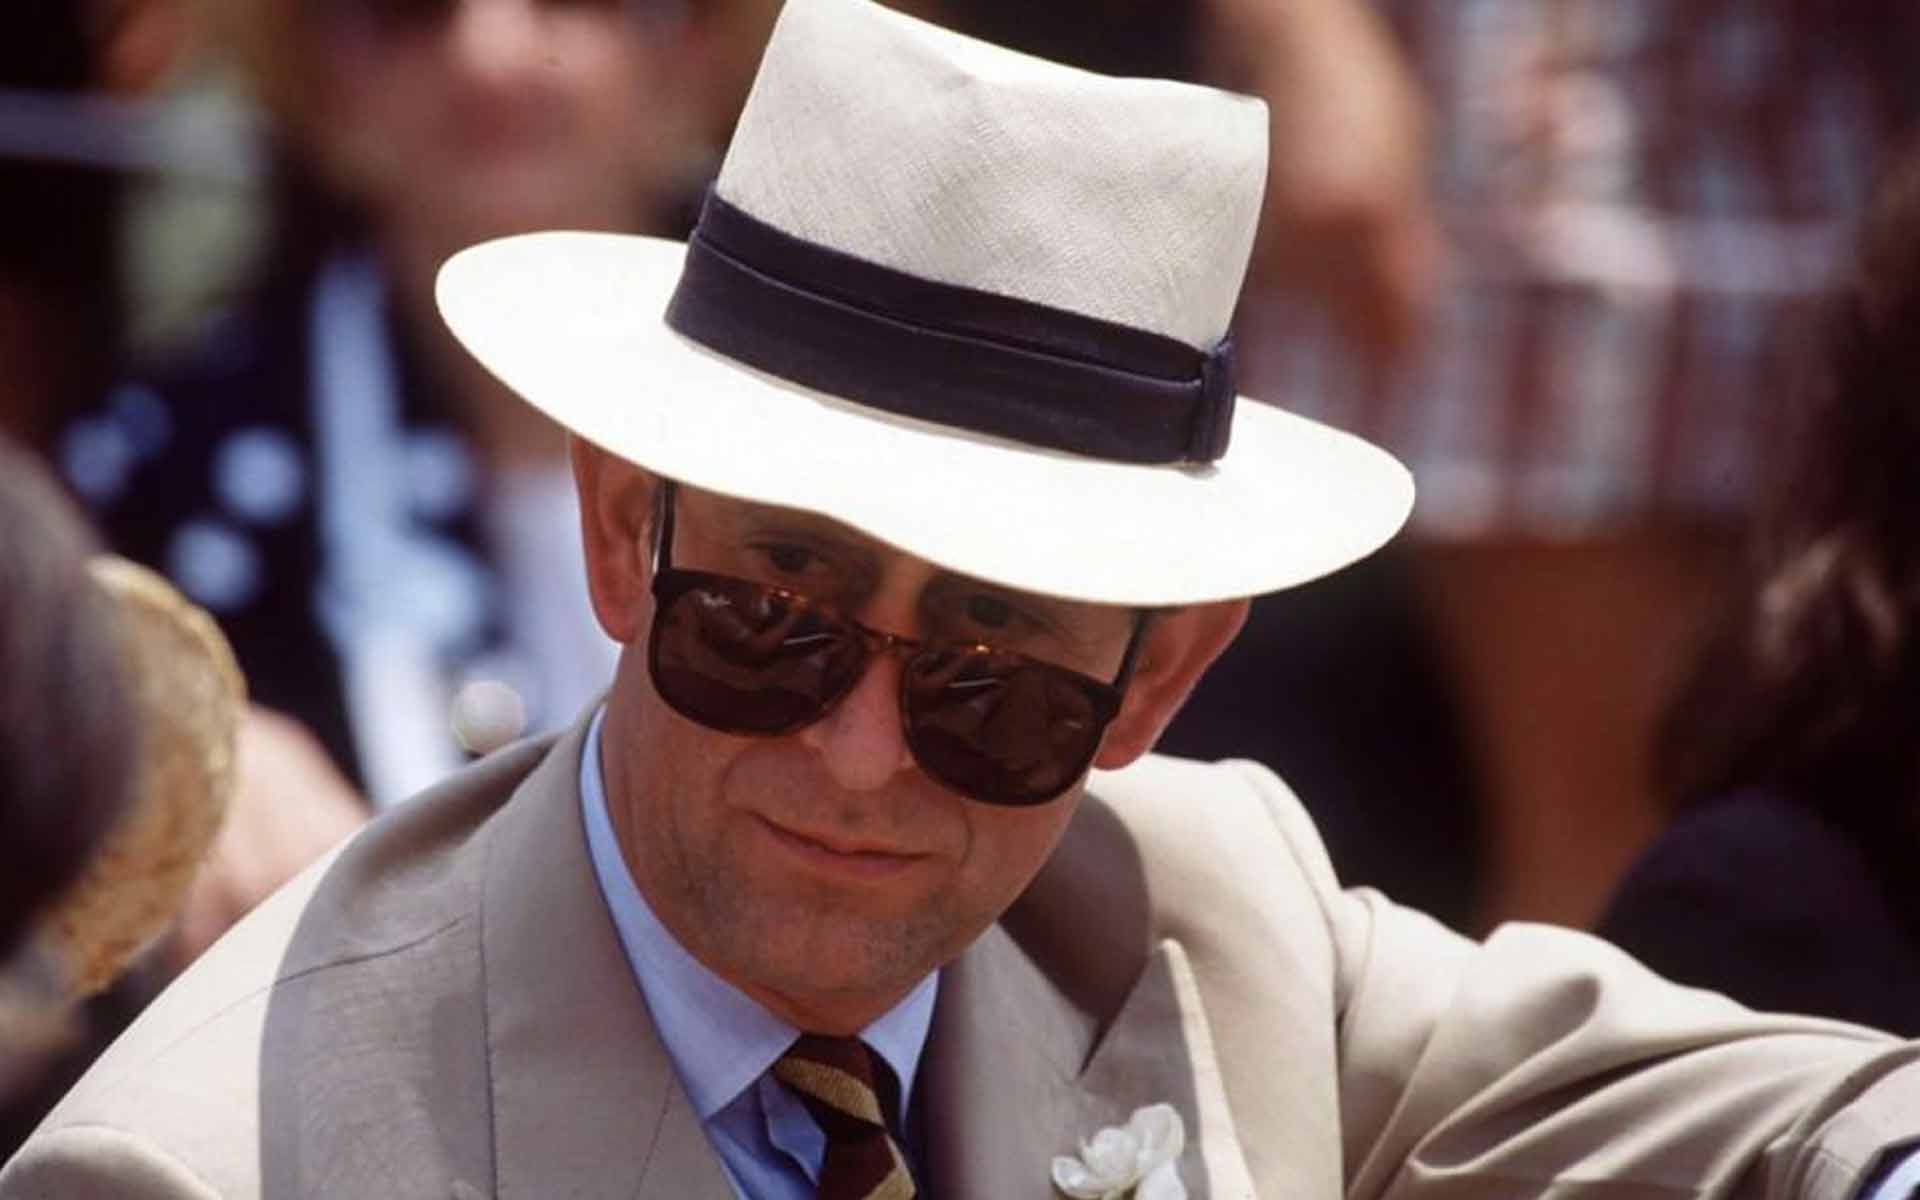 Prince Charles Showing his Style in Timeless Wayfarer Style Sunglasses